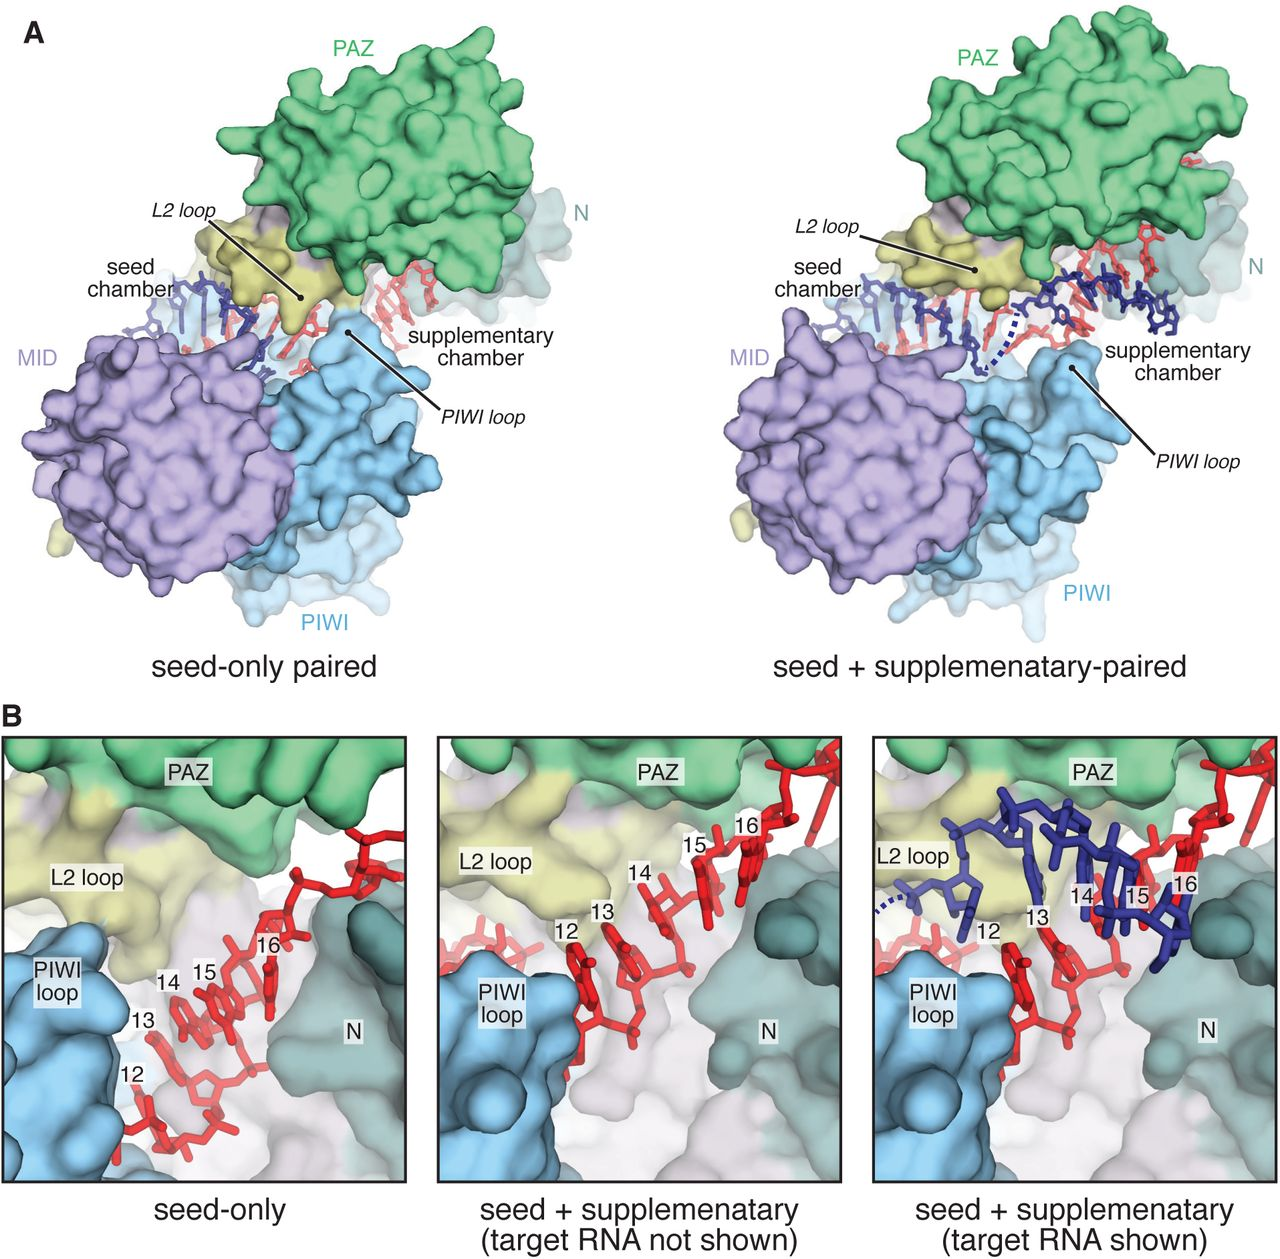 Beyond the seed: structural basis for supplementary microRNA